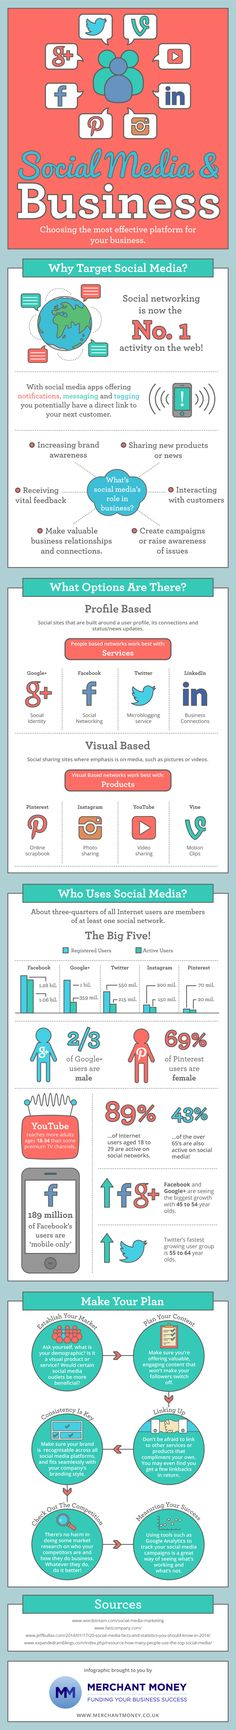 1948 best Social Media Infographics images on Pinterest Social - media planner resume